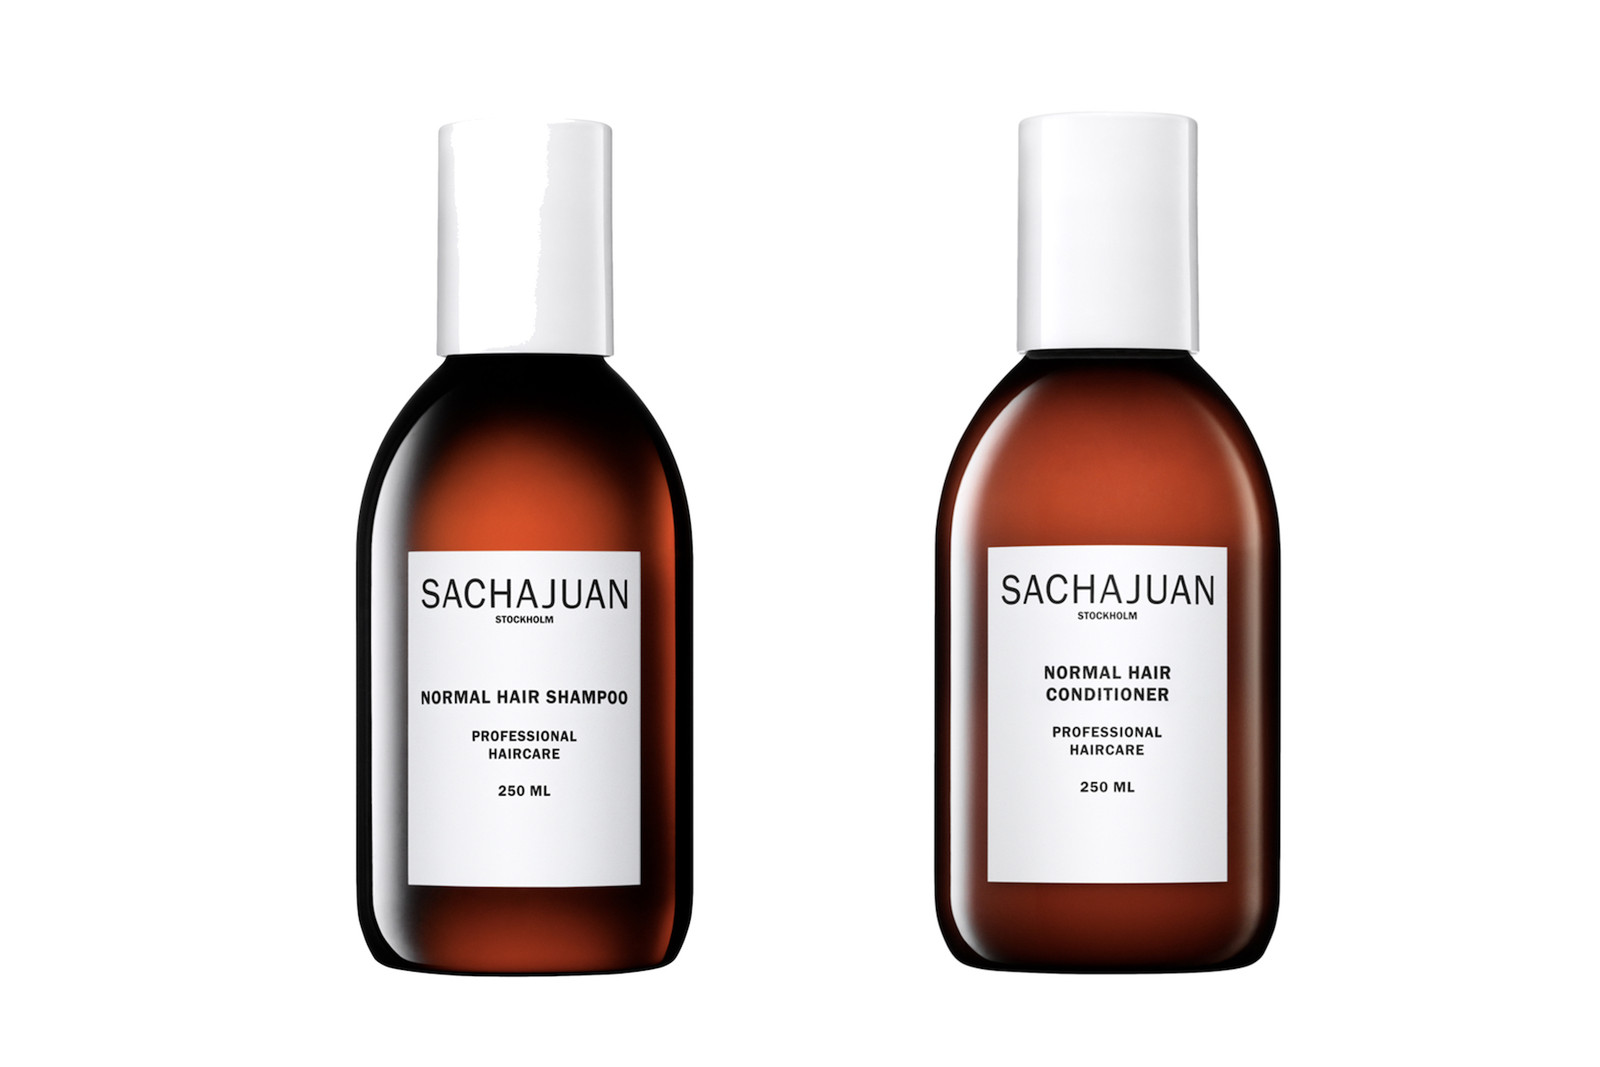 5 Best Swedish Beauty and Skincare Brands Byredo Sachajuan LA Bruket Bjork and Berries Verso